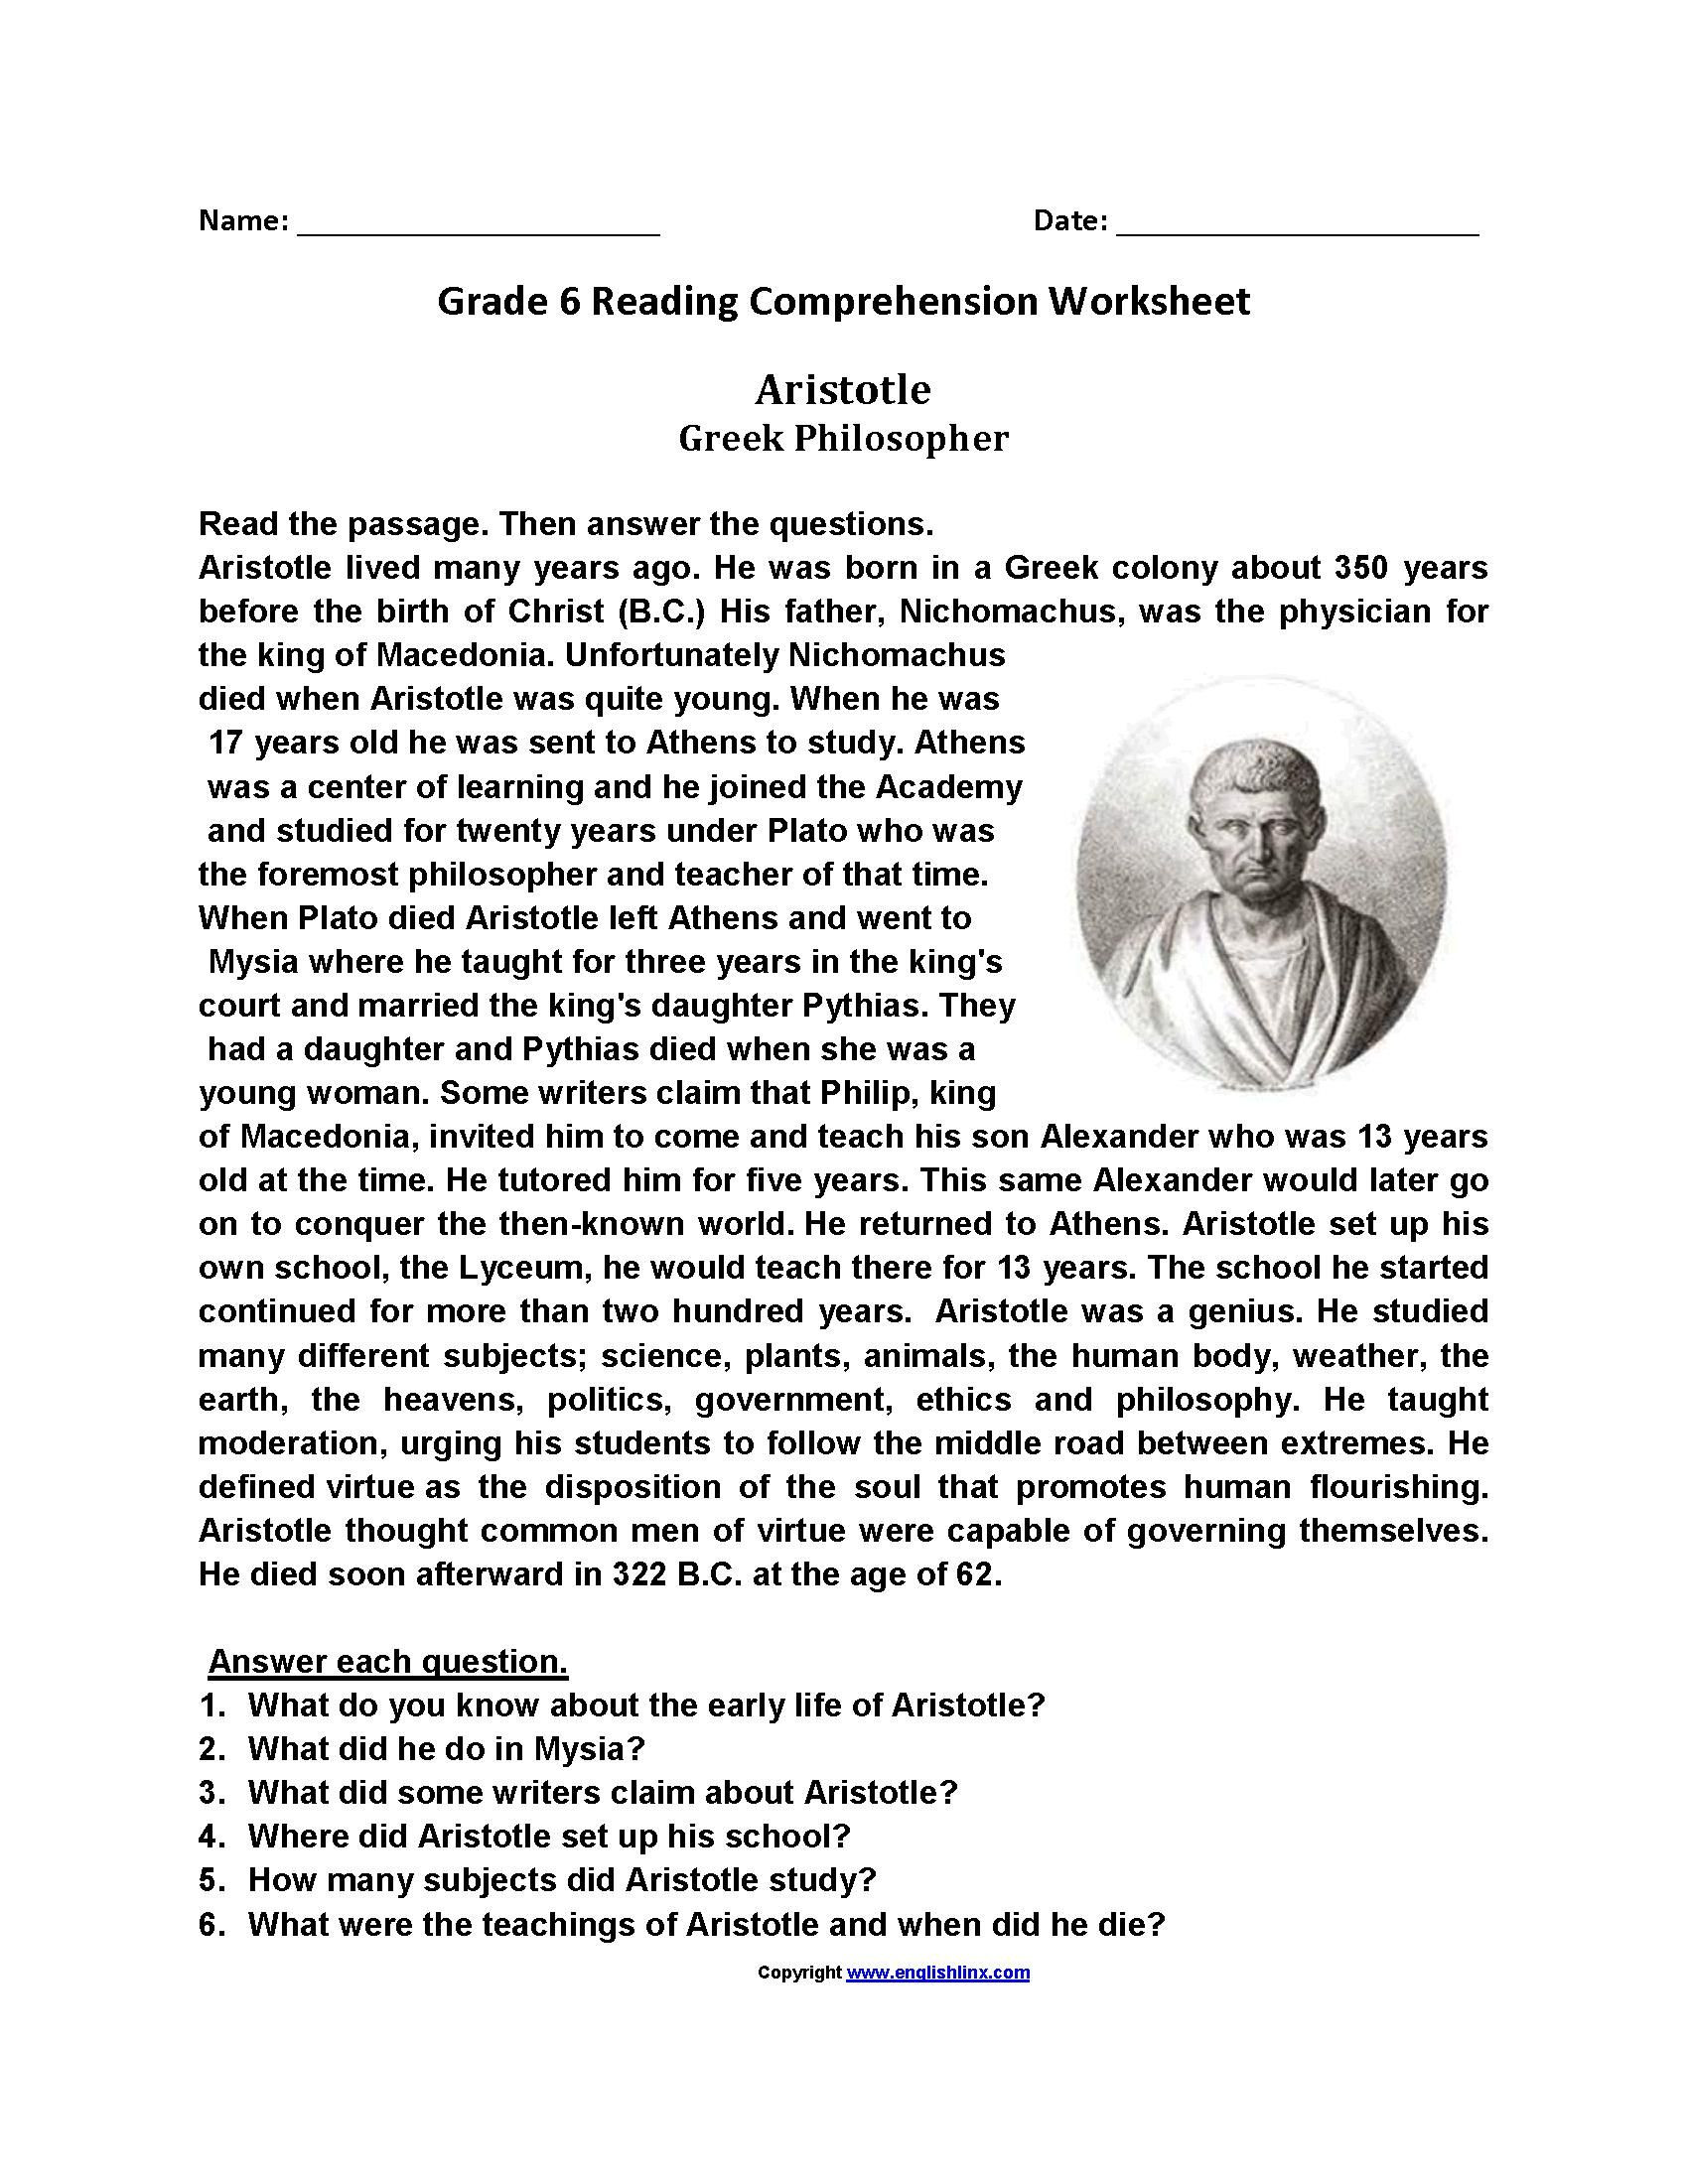 6th Grade Reading Worksheets Printable Free Printable Reading Worksheets for Grade 6 в 2020 г